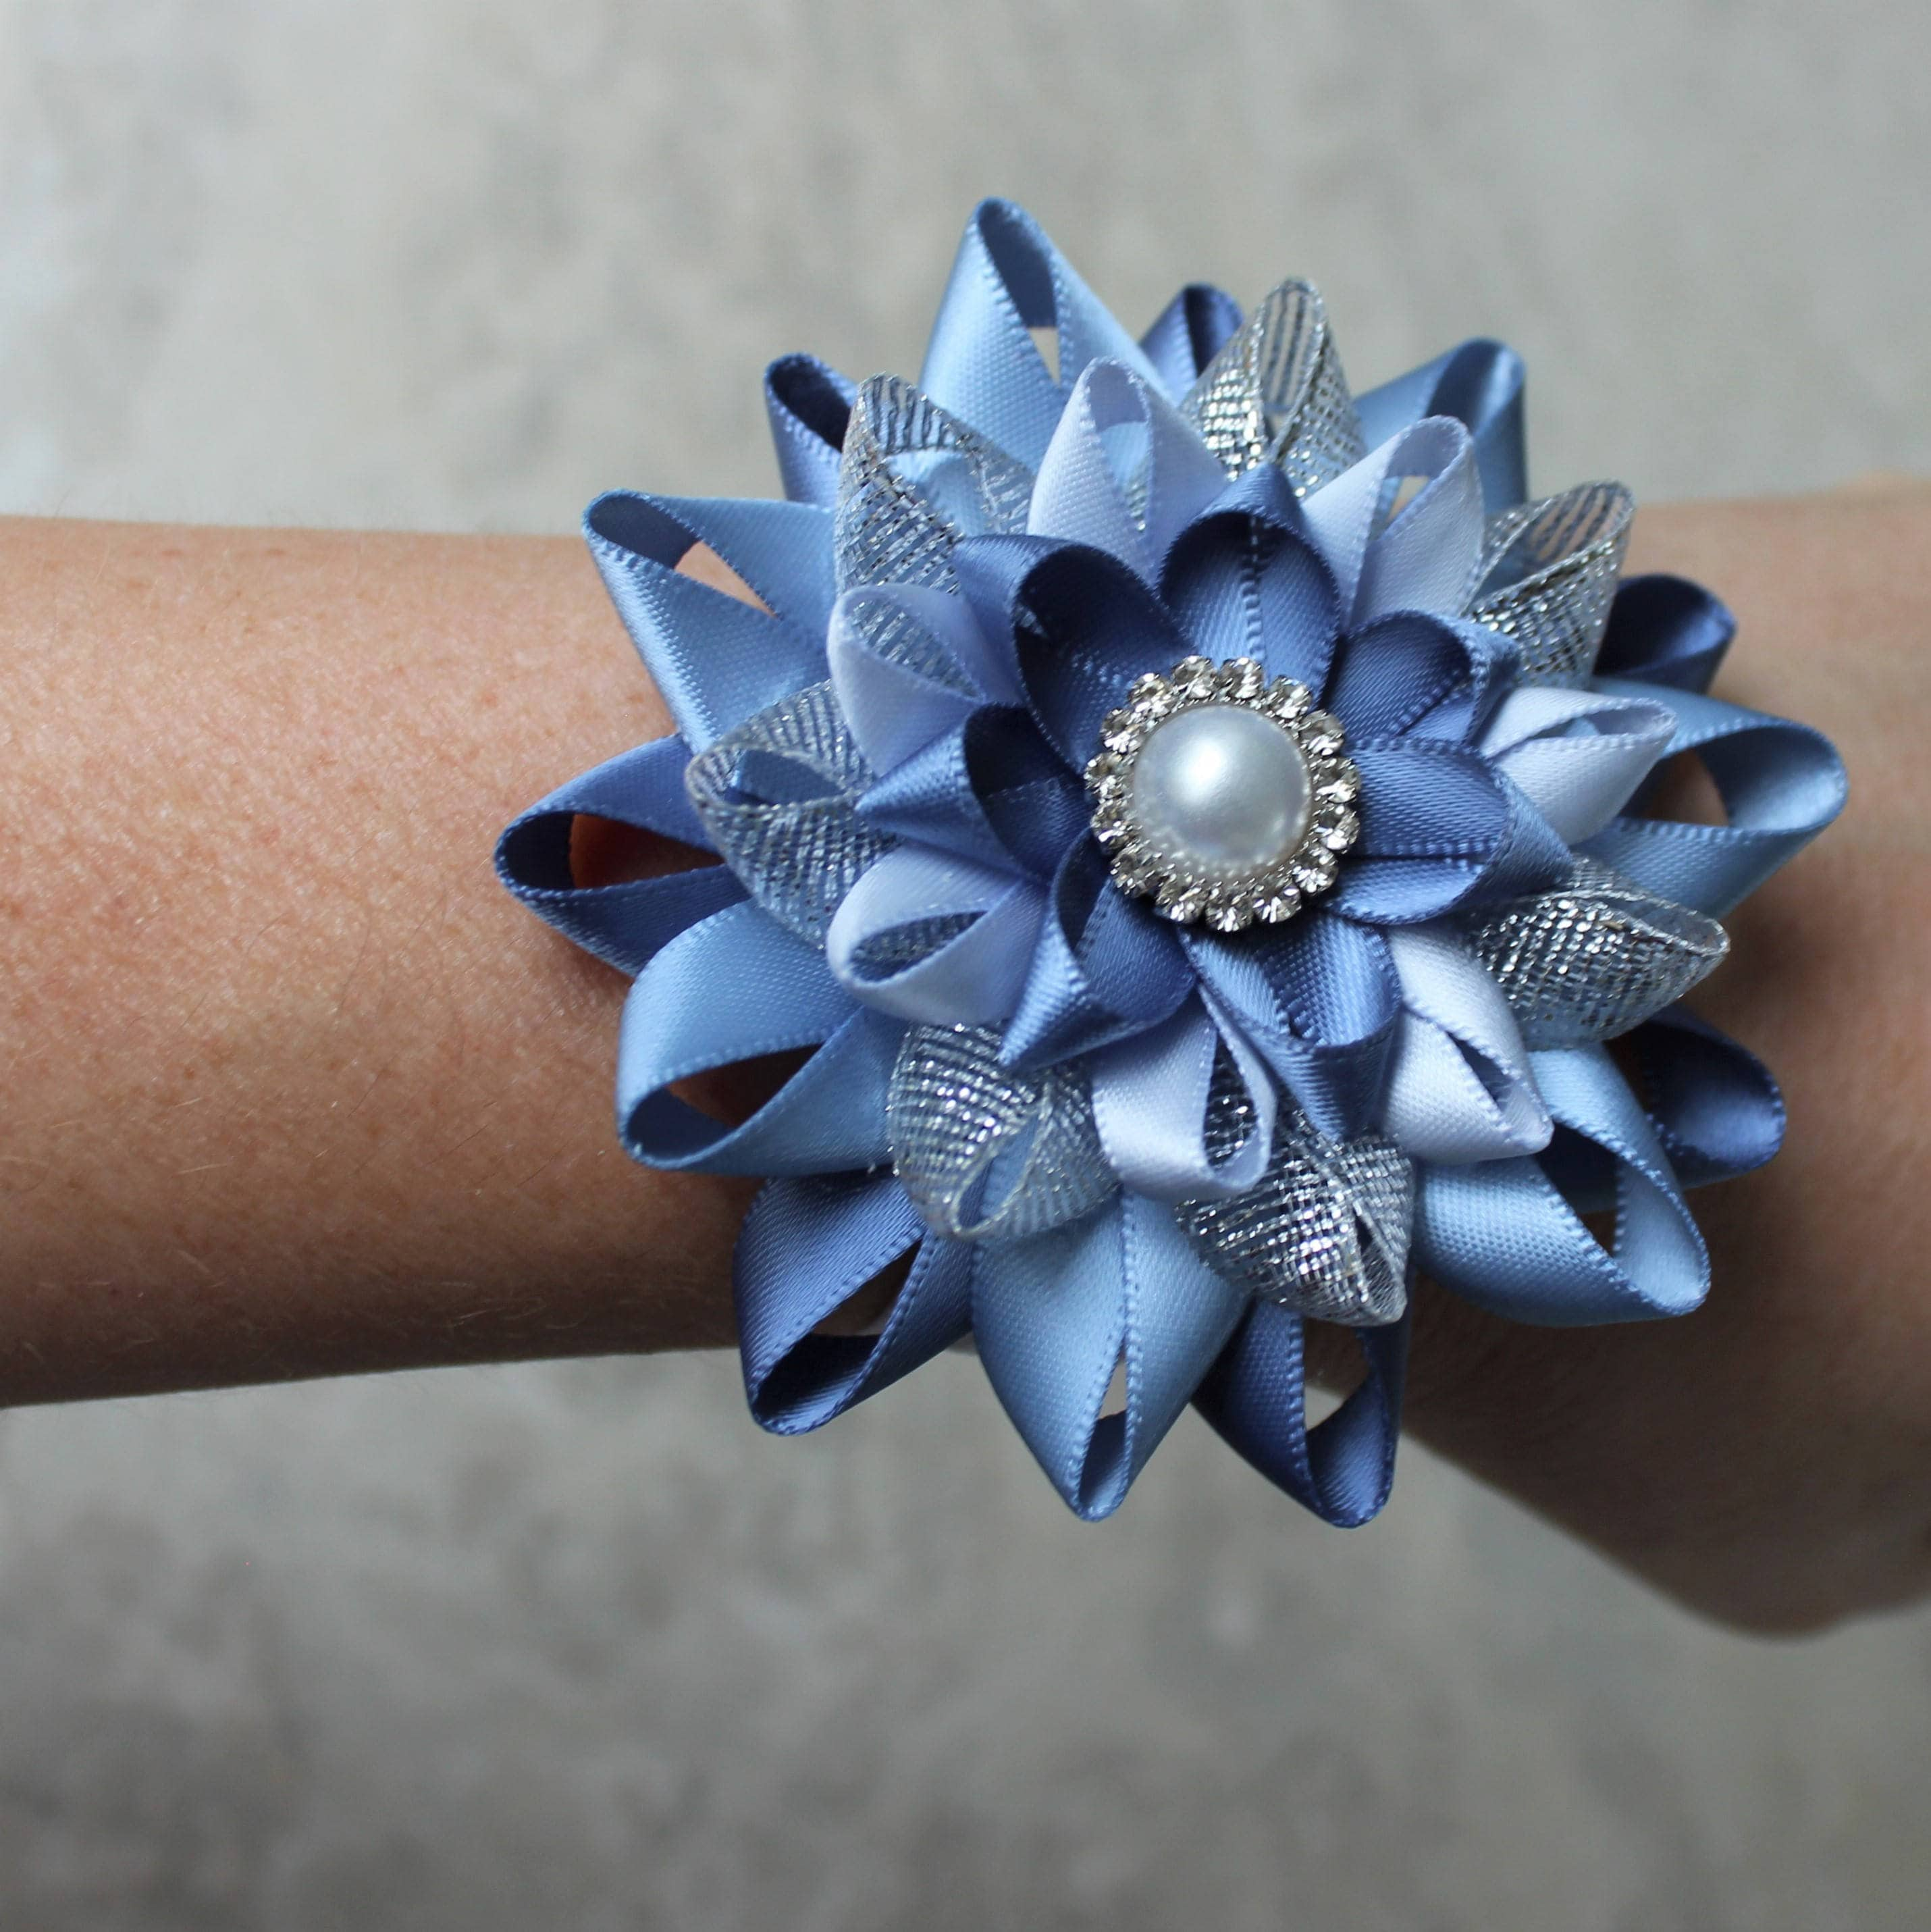 Wrist corsage and boutonniere bridal party flower bout homecoming wrist corsage and boutonniere bridal party flower bout homecoming prom flowers wrist flowers denim blue french blue silver ice blue izmirmasajfo Gallery